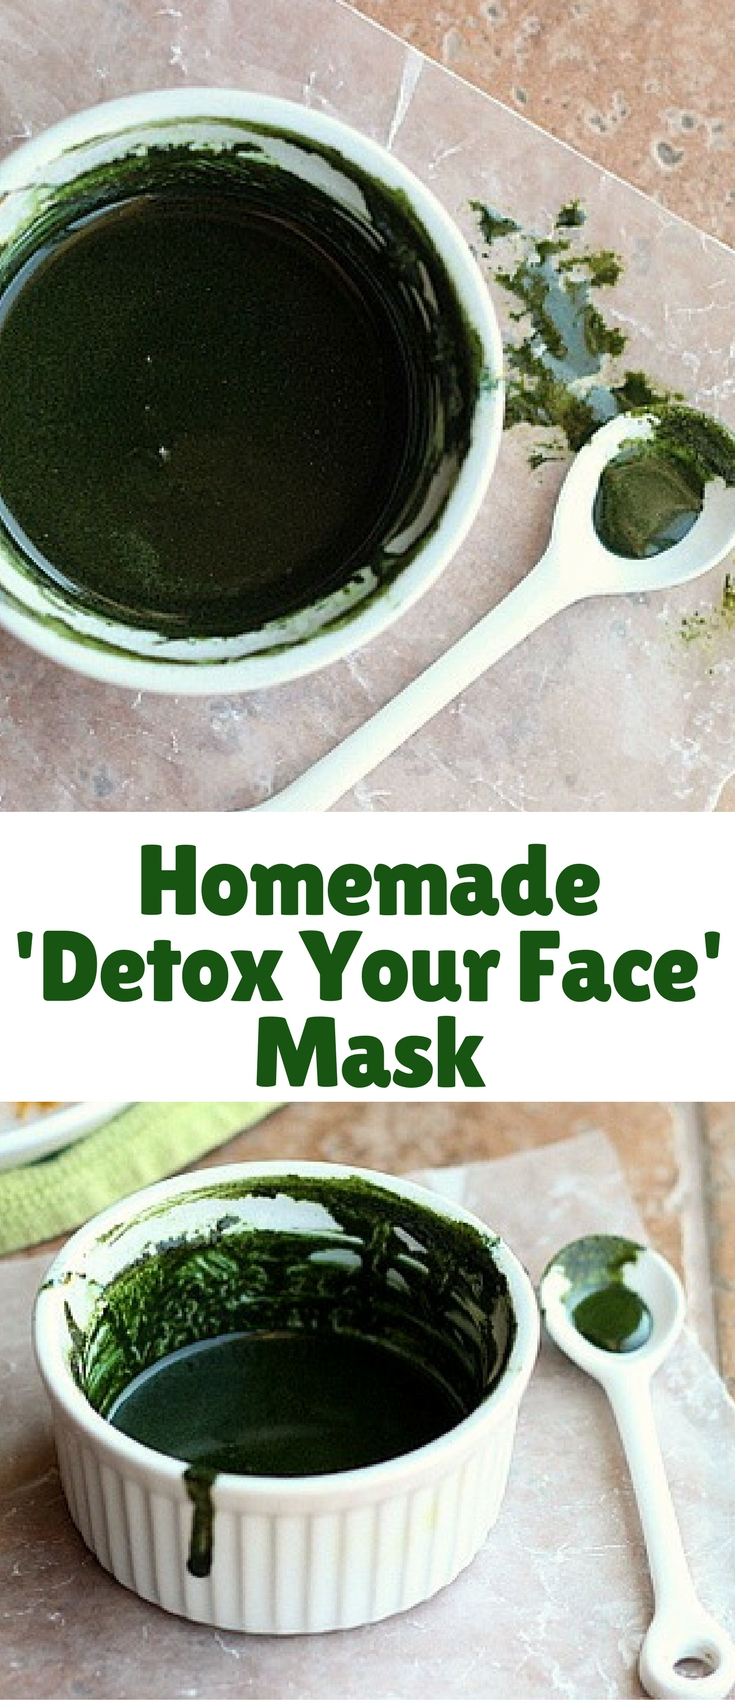 Masks are really where it's at for skin! By leaving these nutrients on, the skin has time to absorb what it needs to make you look and feel beautiful!